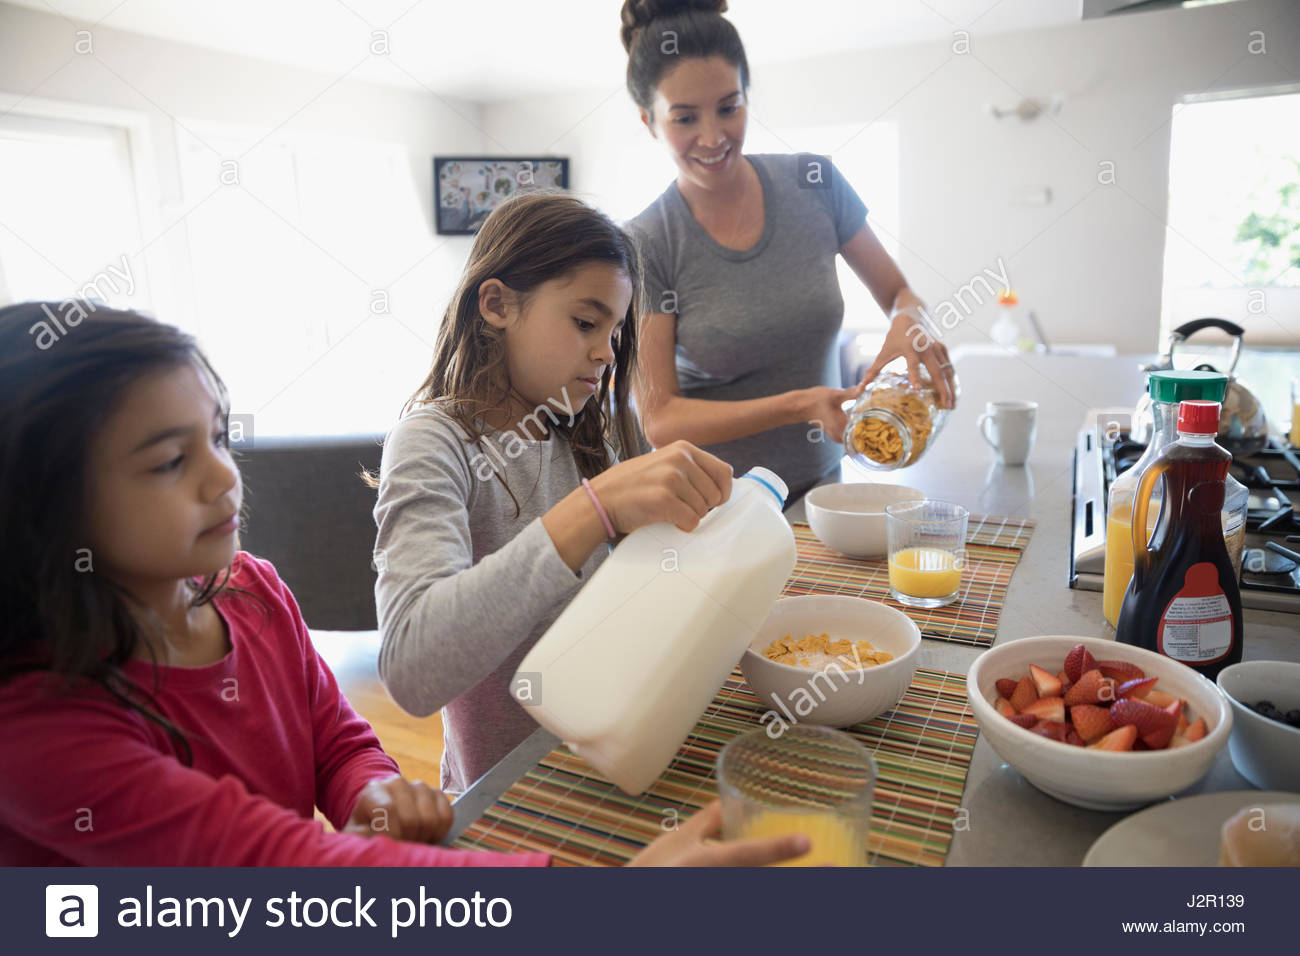 Mother and daughters eating breakfast in kitchen - Stock Image